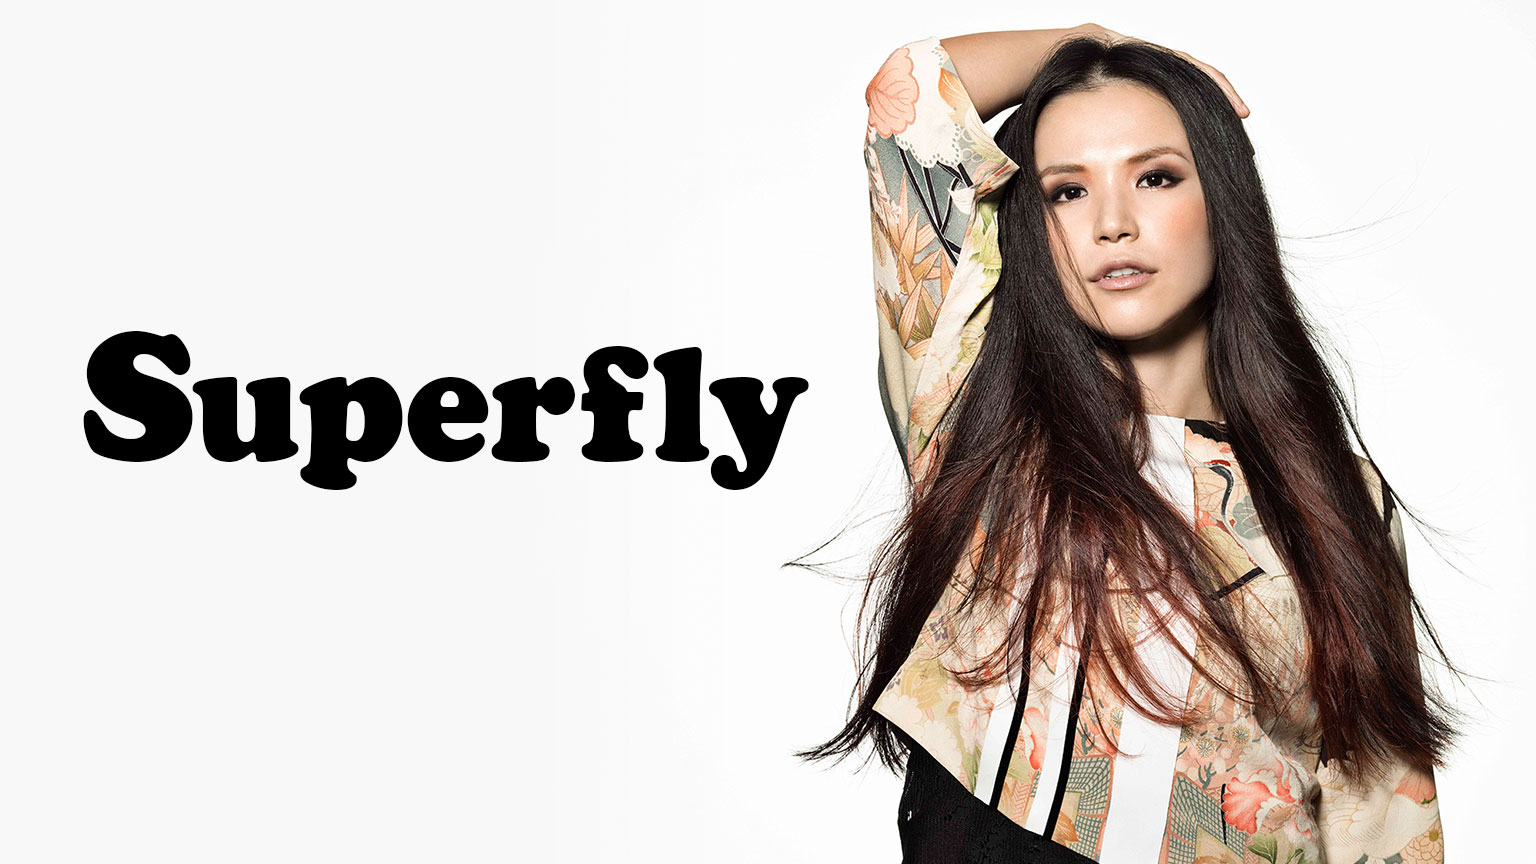 Superfly 「黒い雫」